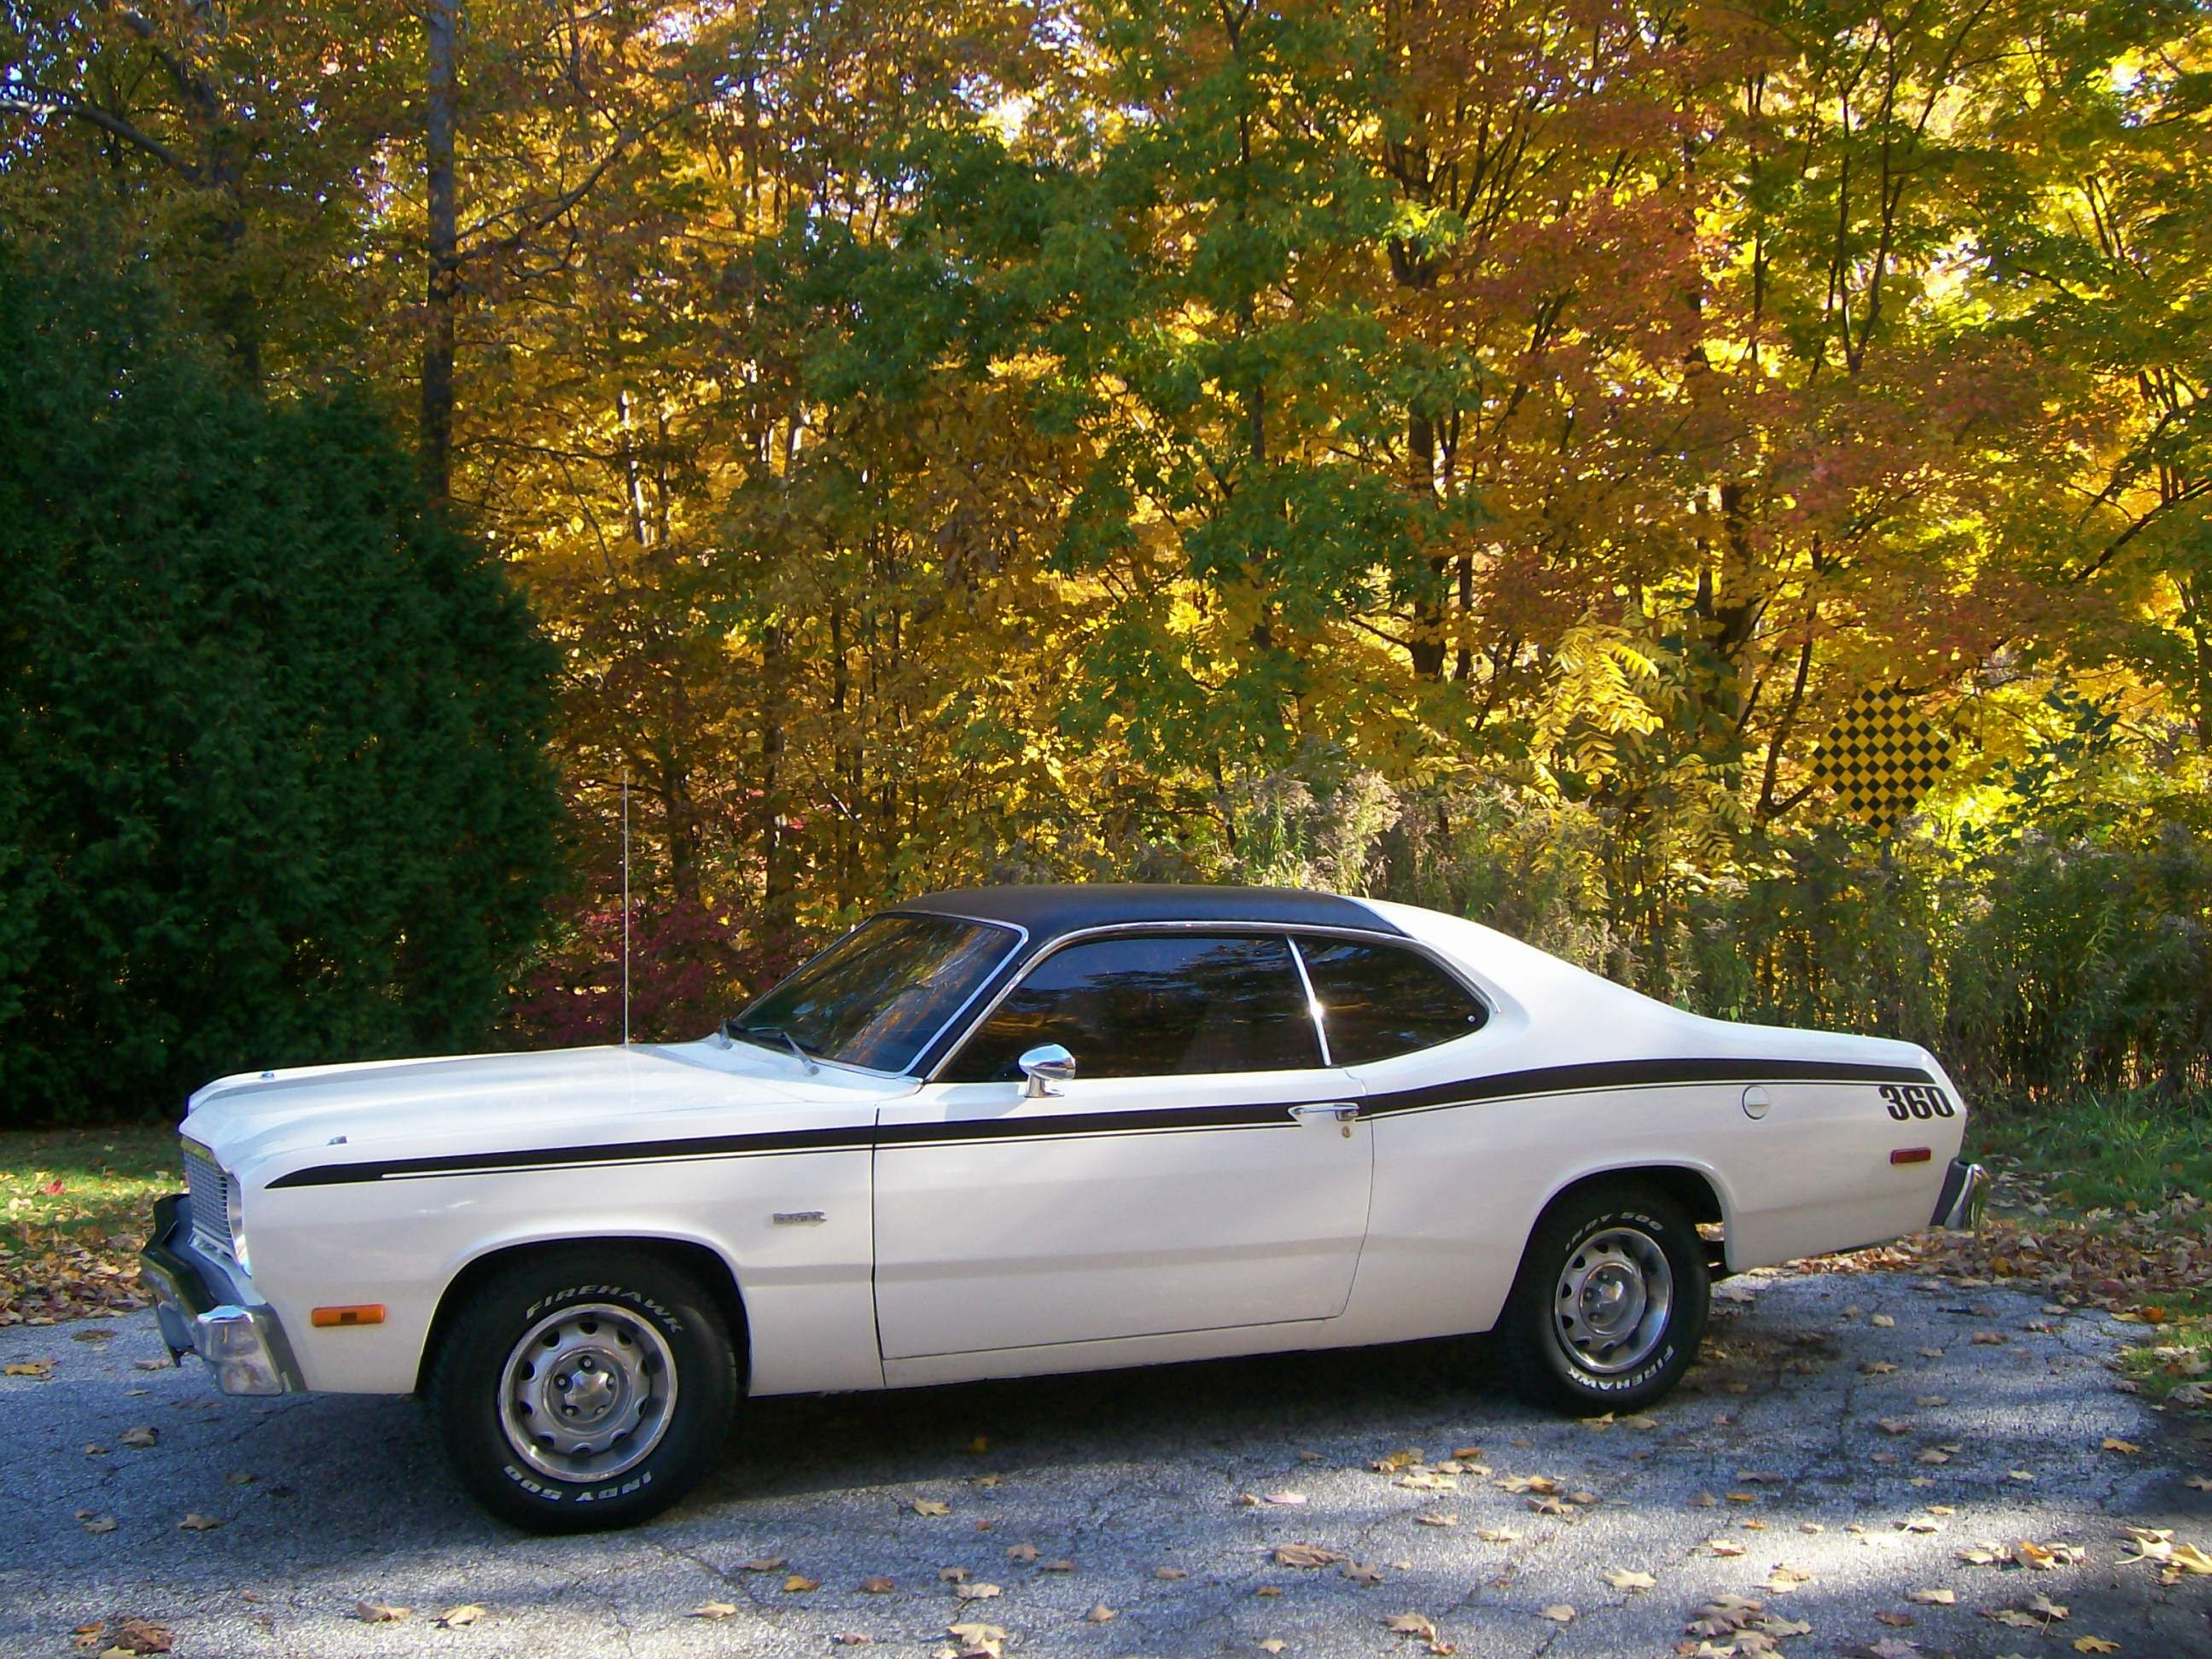 1976 Plymouth Duster 360 V8 Plymouth Duster Plymouth Cars Plymouth